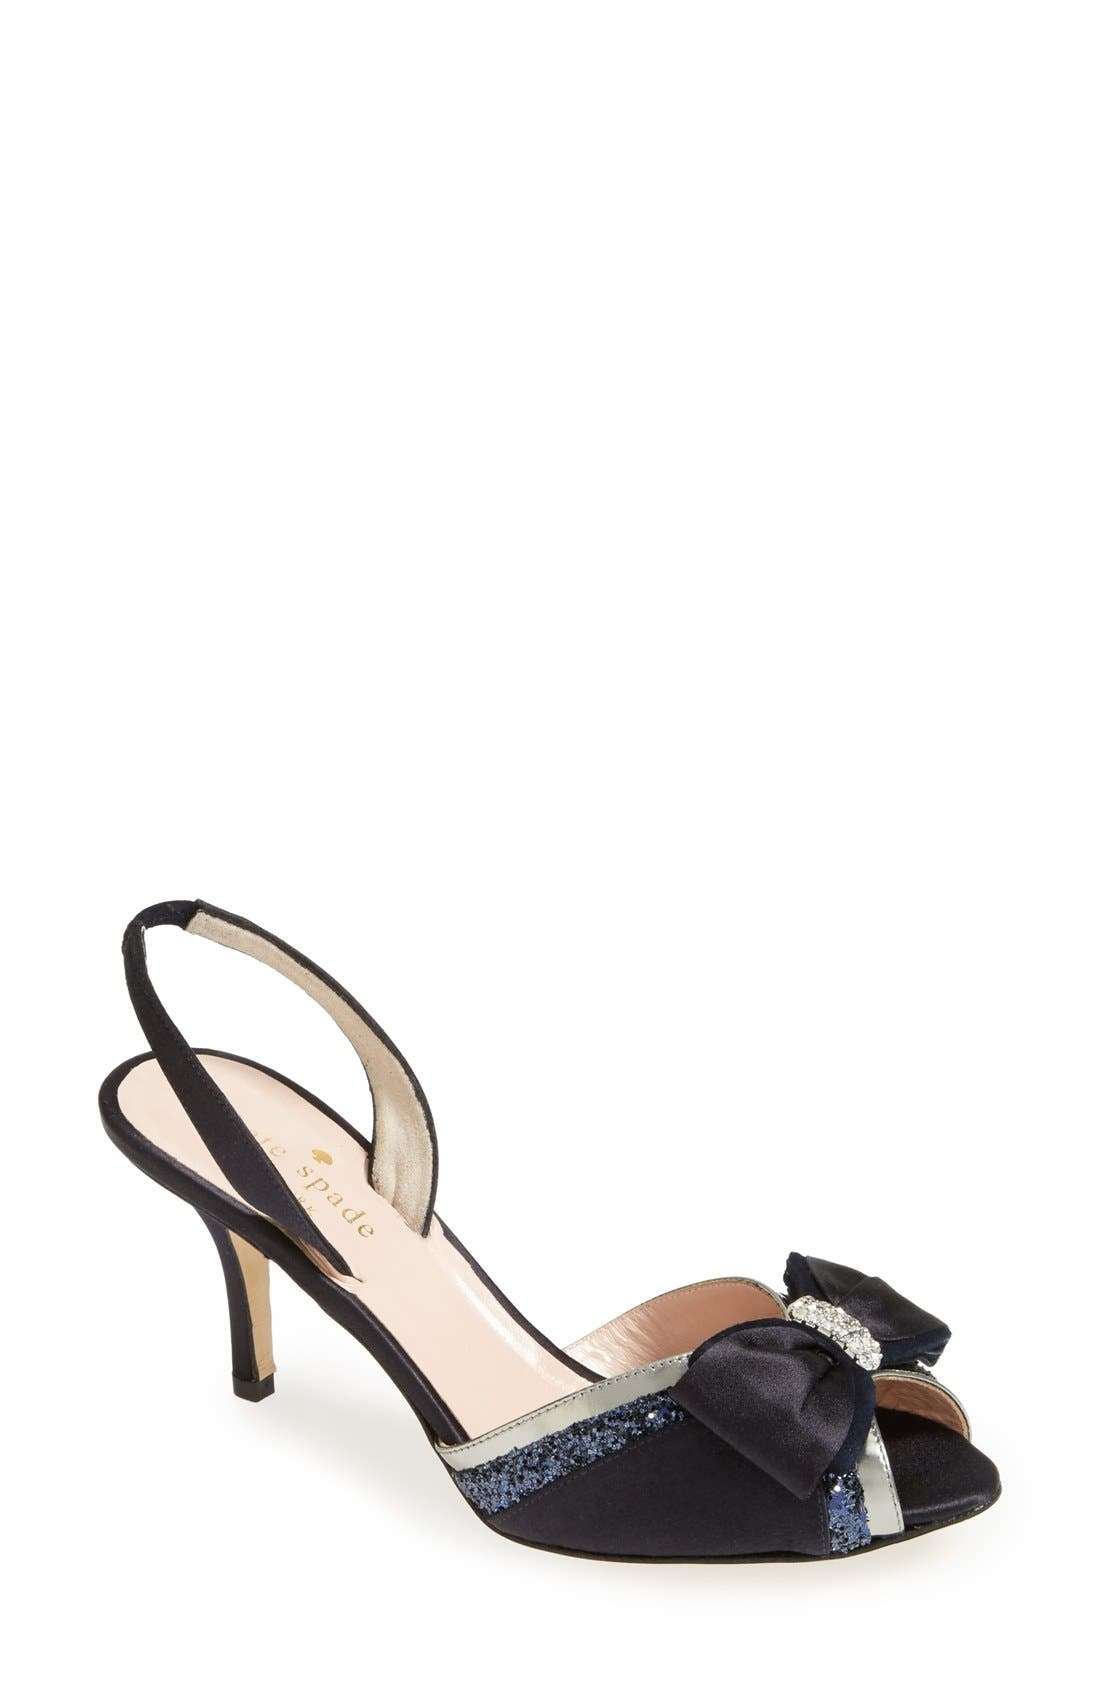 Main Image - kate spade new york 'solar' satin bow sandal (women)